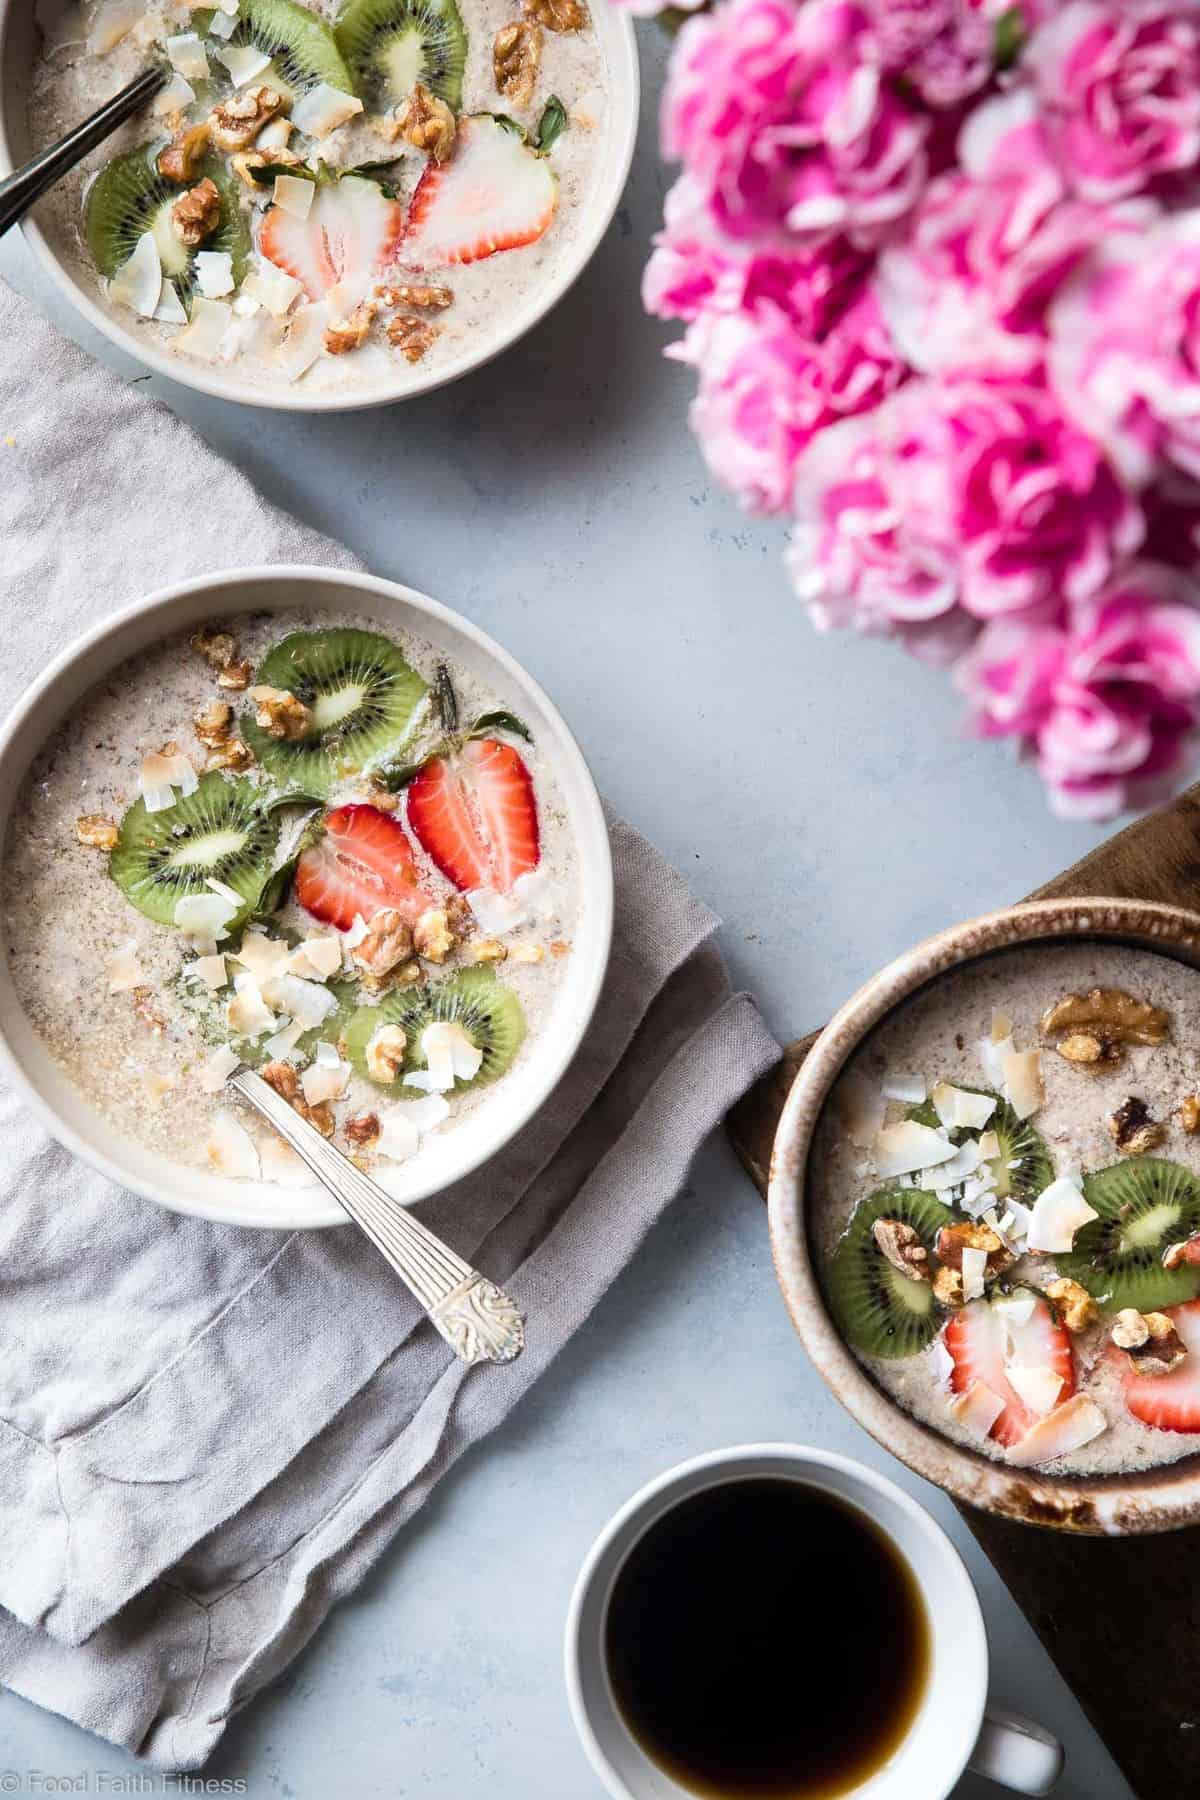 No Oats Paleo Oatmeal -This grain free oatmeal is an EASY, healthy recipe that you can make ahead for busy mornings! Loaded with healthy fat to keep you full too! | #Foodfaithfitness | #Glutenfree #dairyfree #paleo #grainfree #healthy